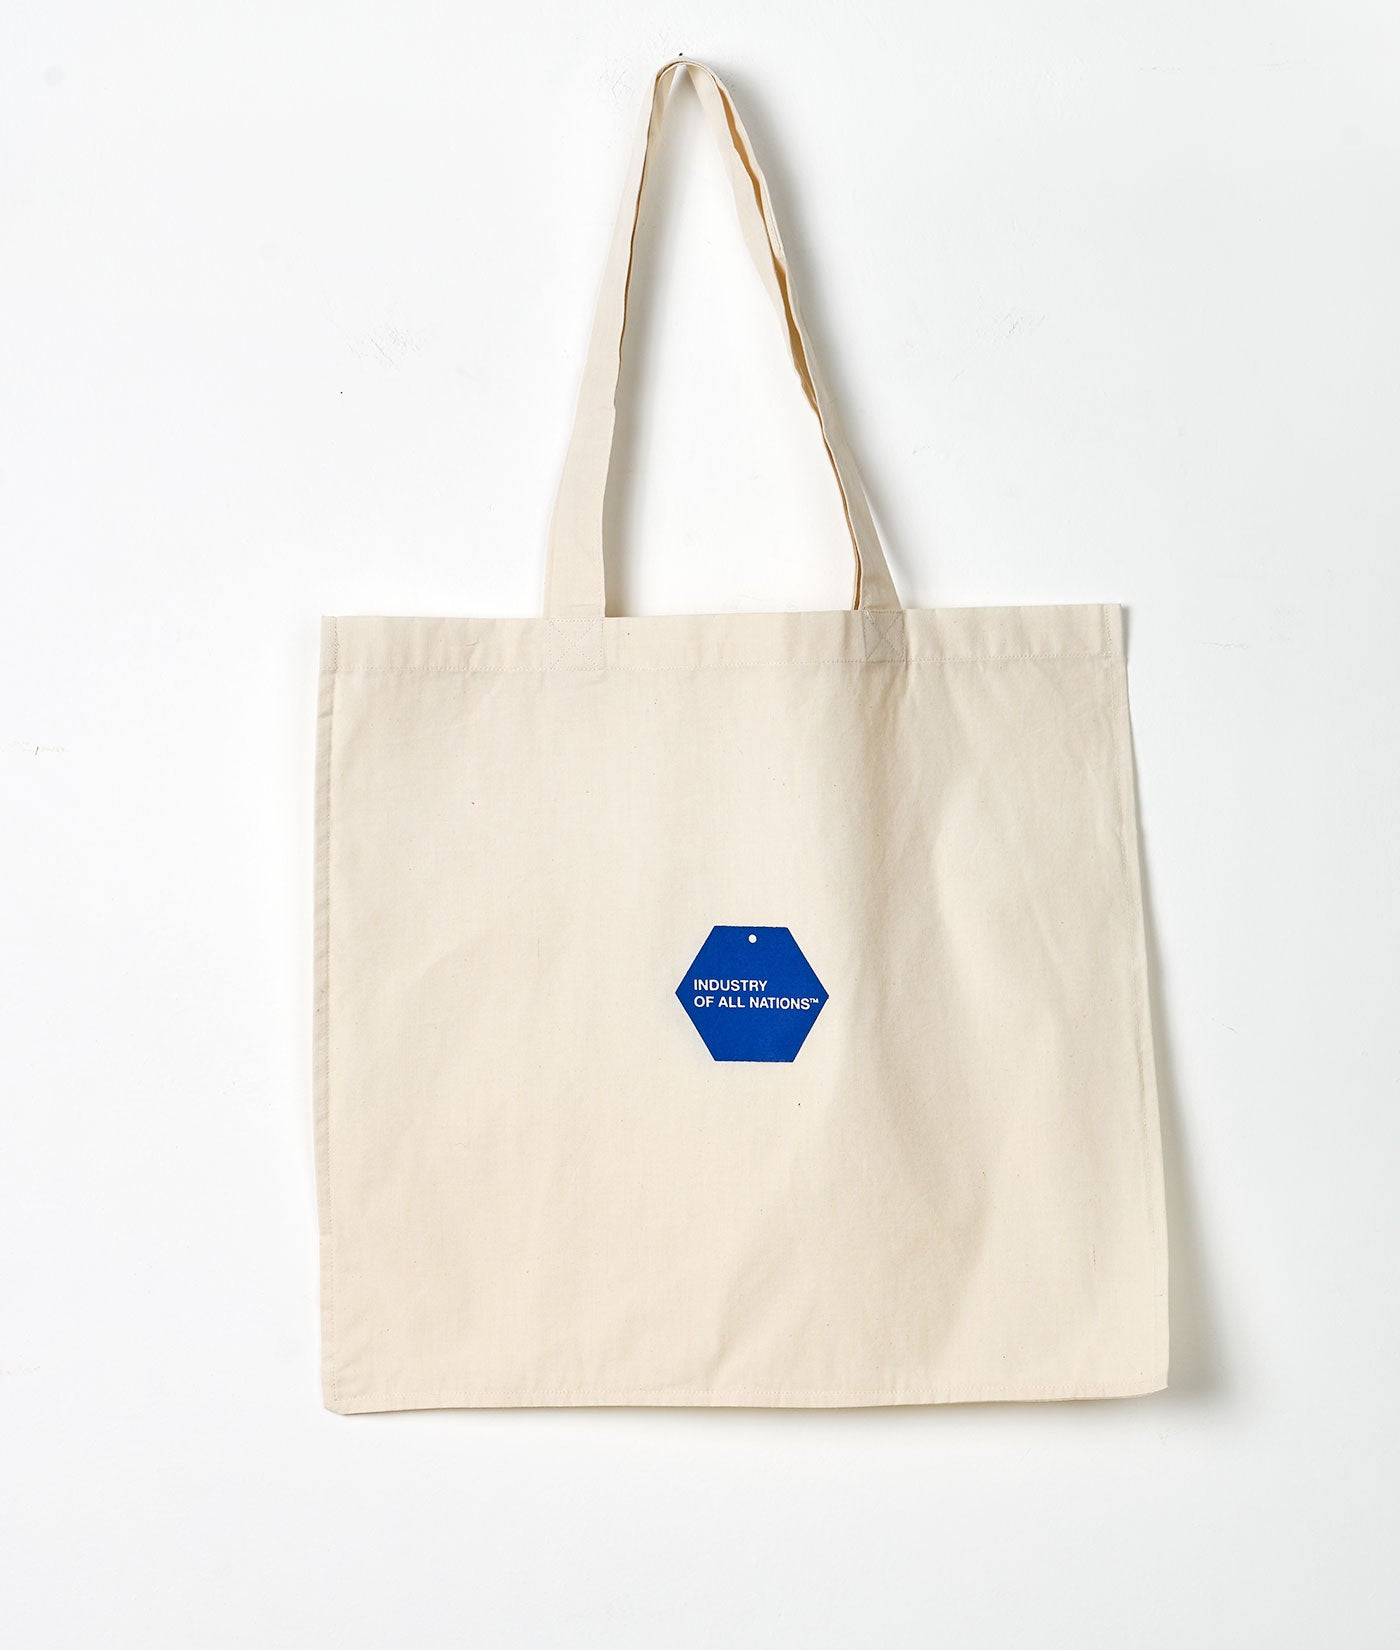 IOAN Small Tote Bag